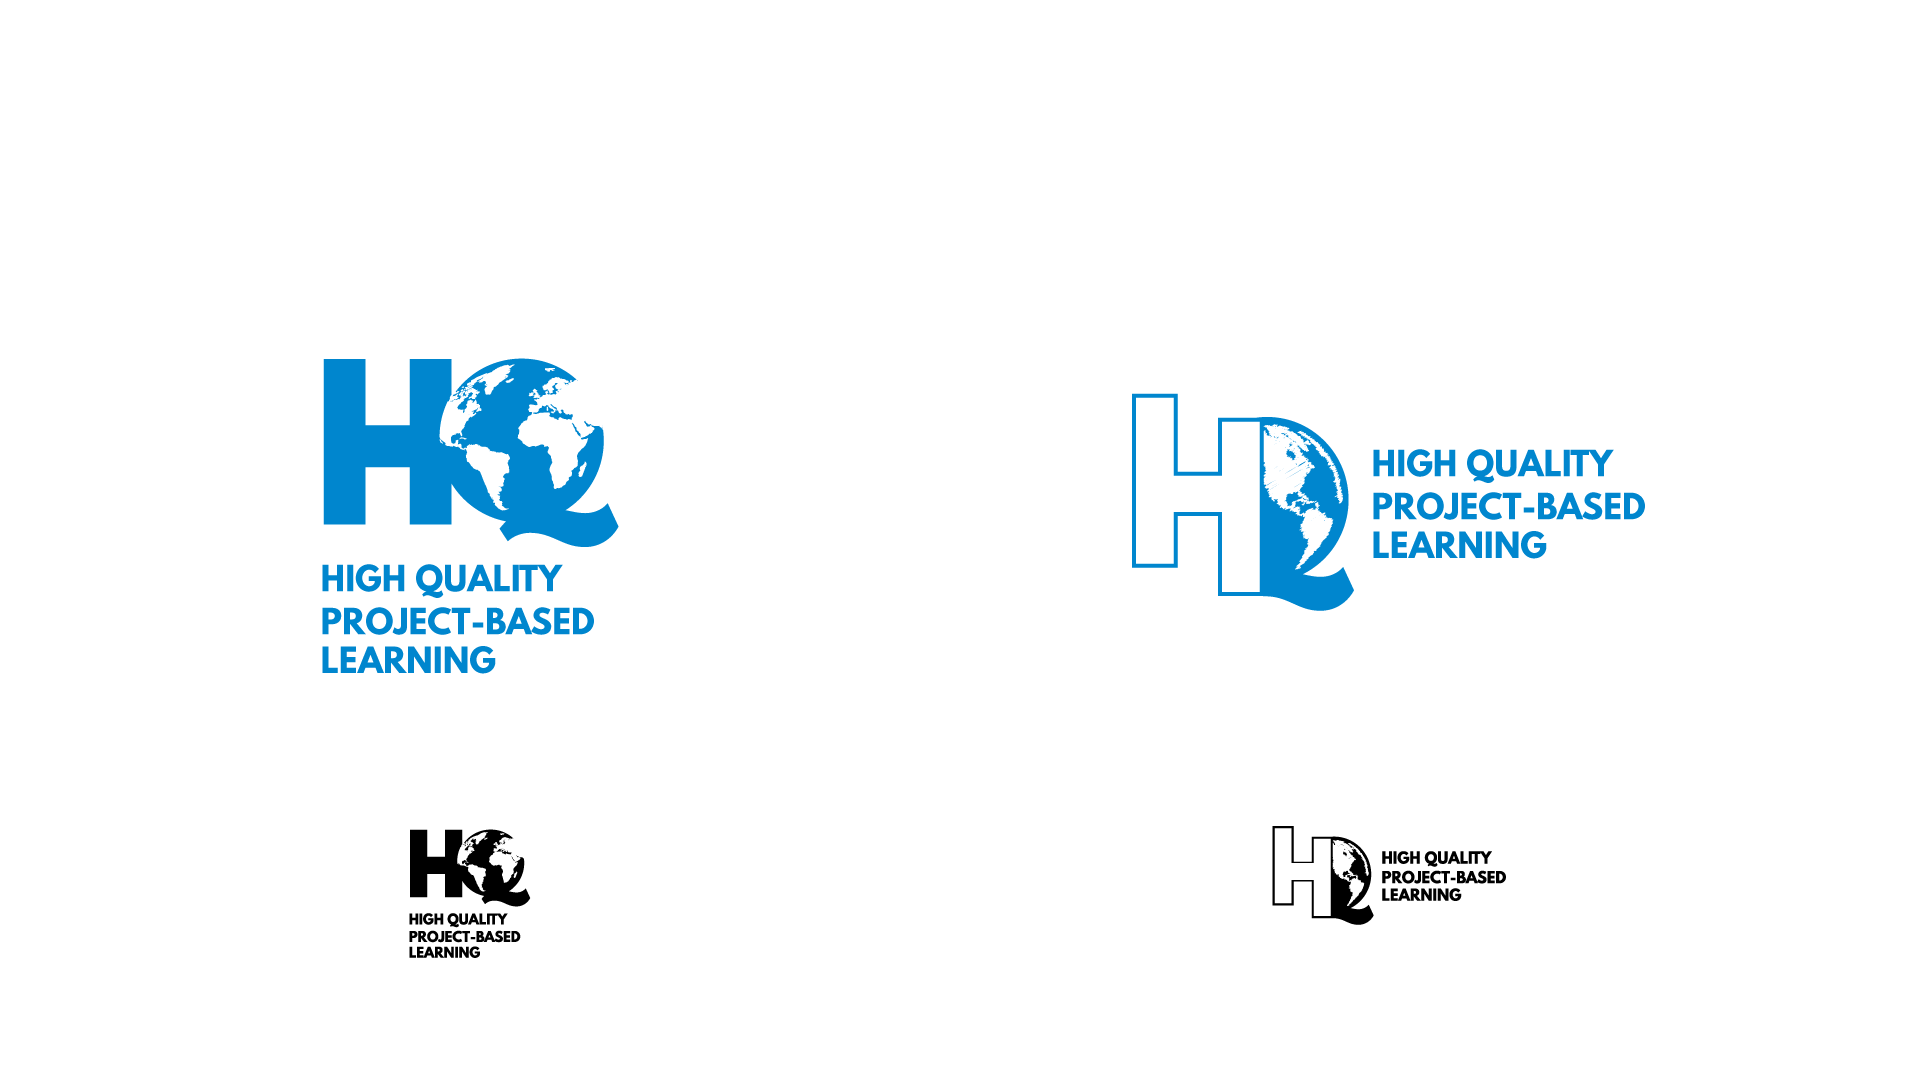 Given the relatively long brand name, the student designer of this concept felt passionately about creating a mark that focused on HQ as an iconic brand. The student took an existing sketch and incorporated the feedback we received to include an earth or a globe.